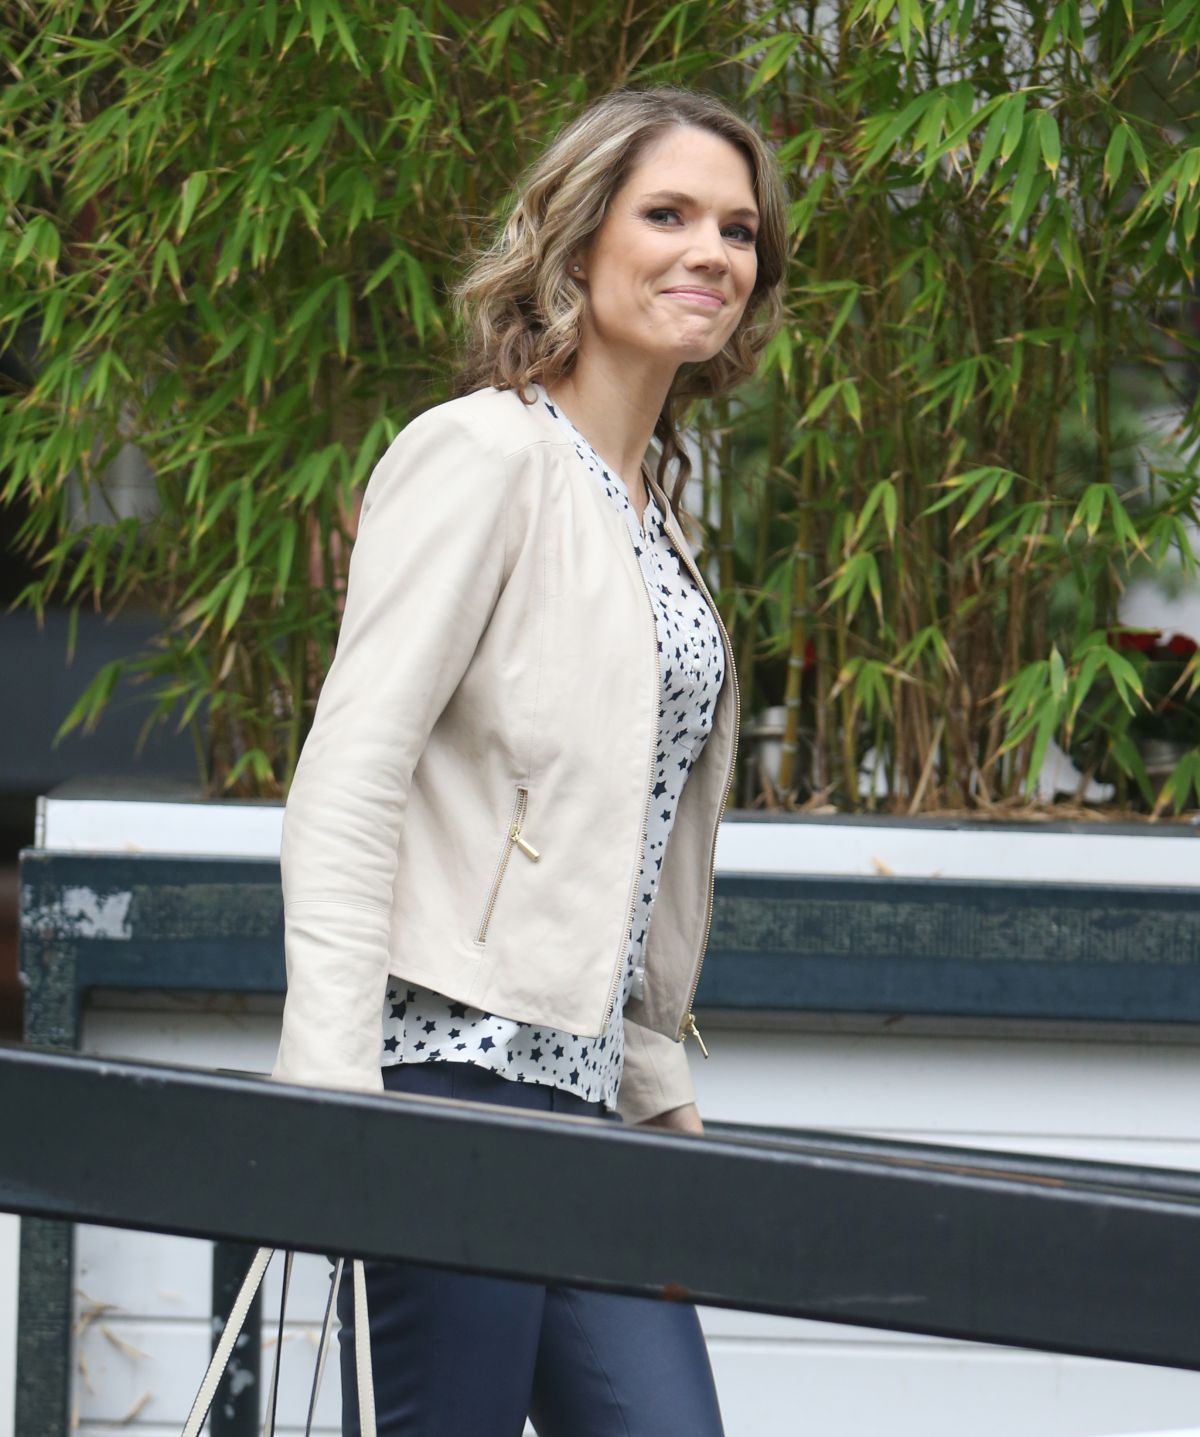 Charlotte Hawkins Seen leaving the ITV studio in London